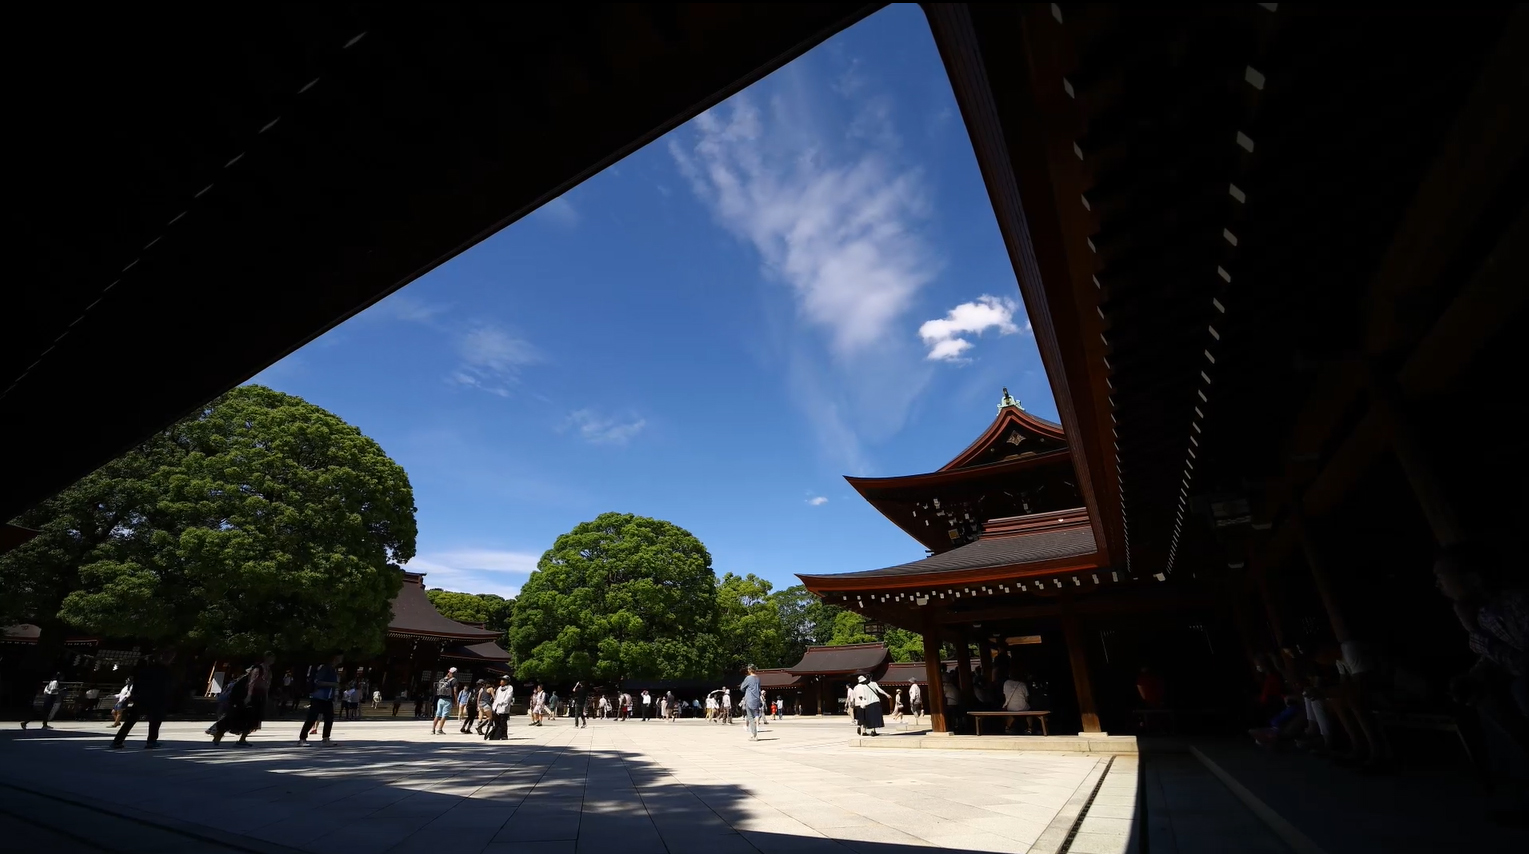 Meiji Jingu, a Shinto Shrine, Japan